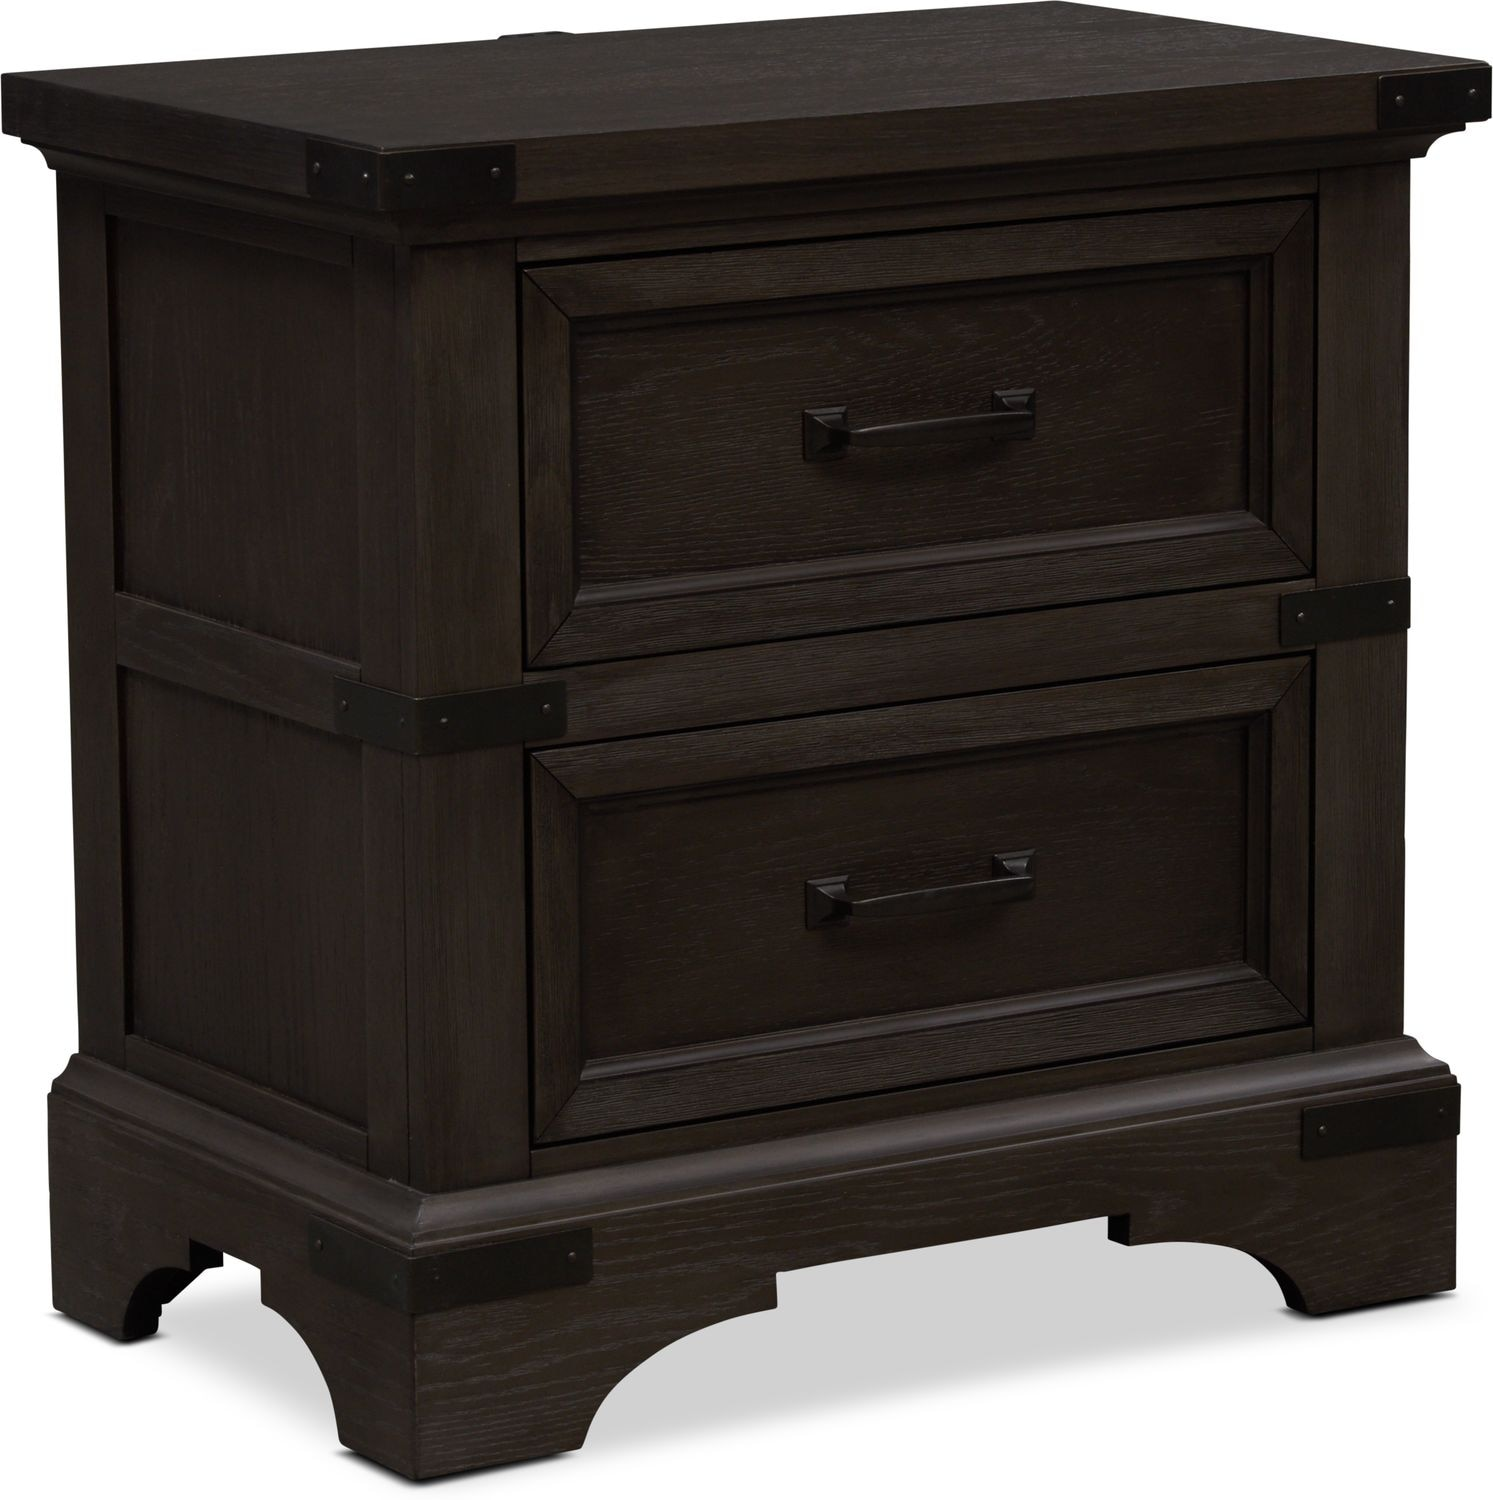 Bedroom Furniture - Victor Nightstand